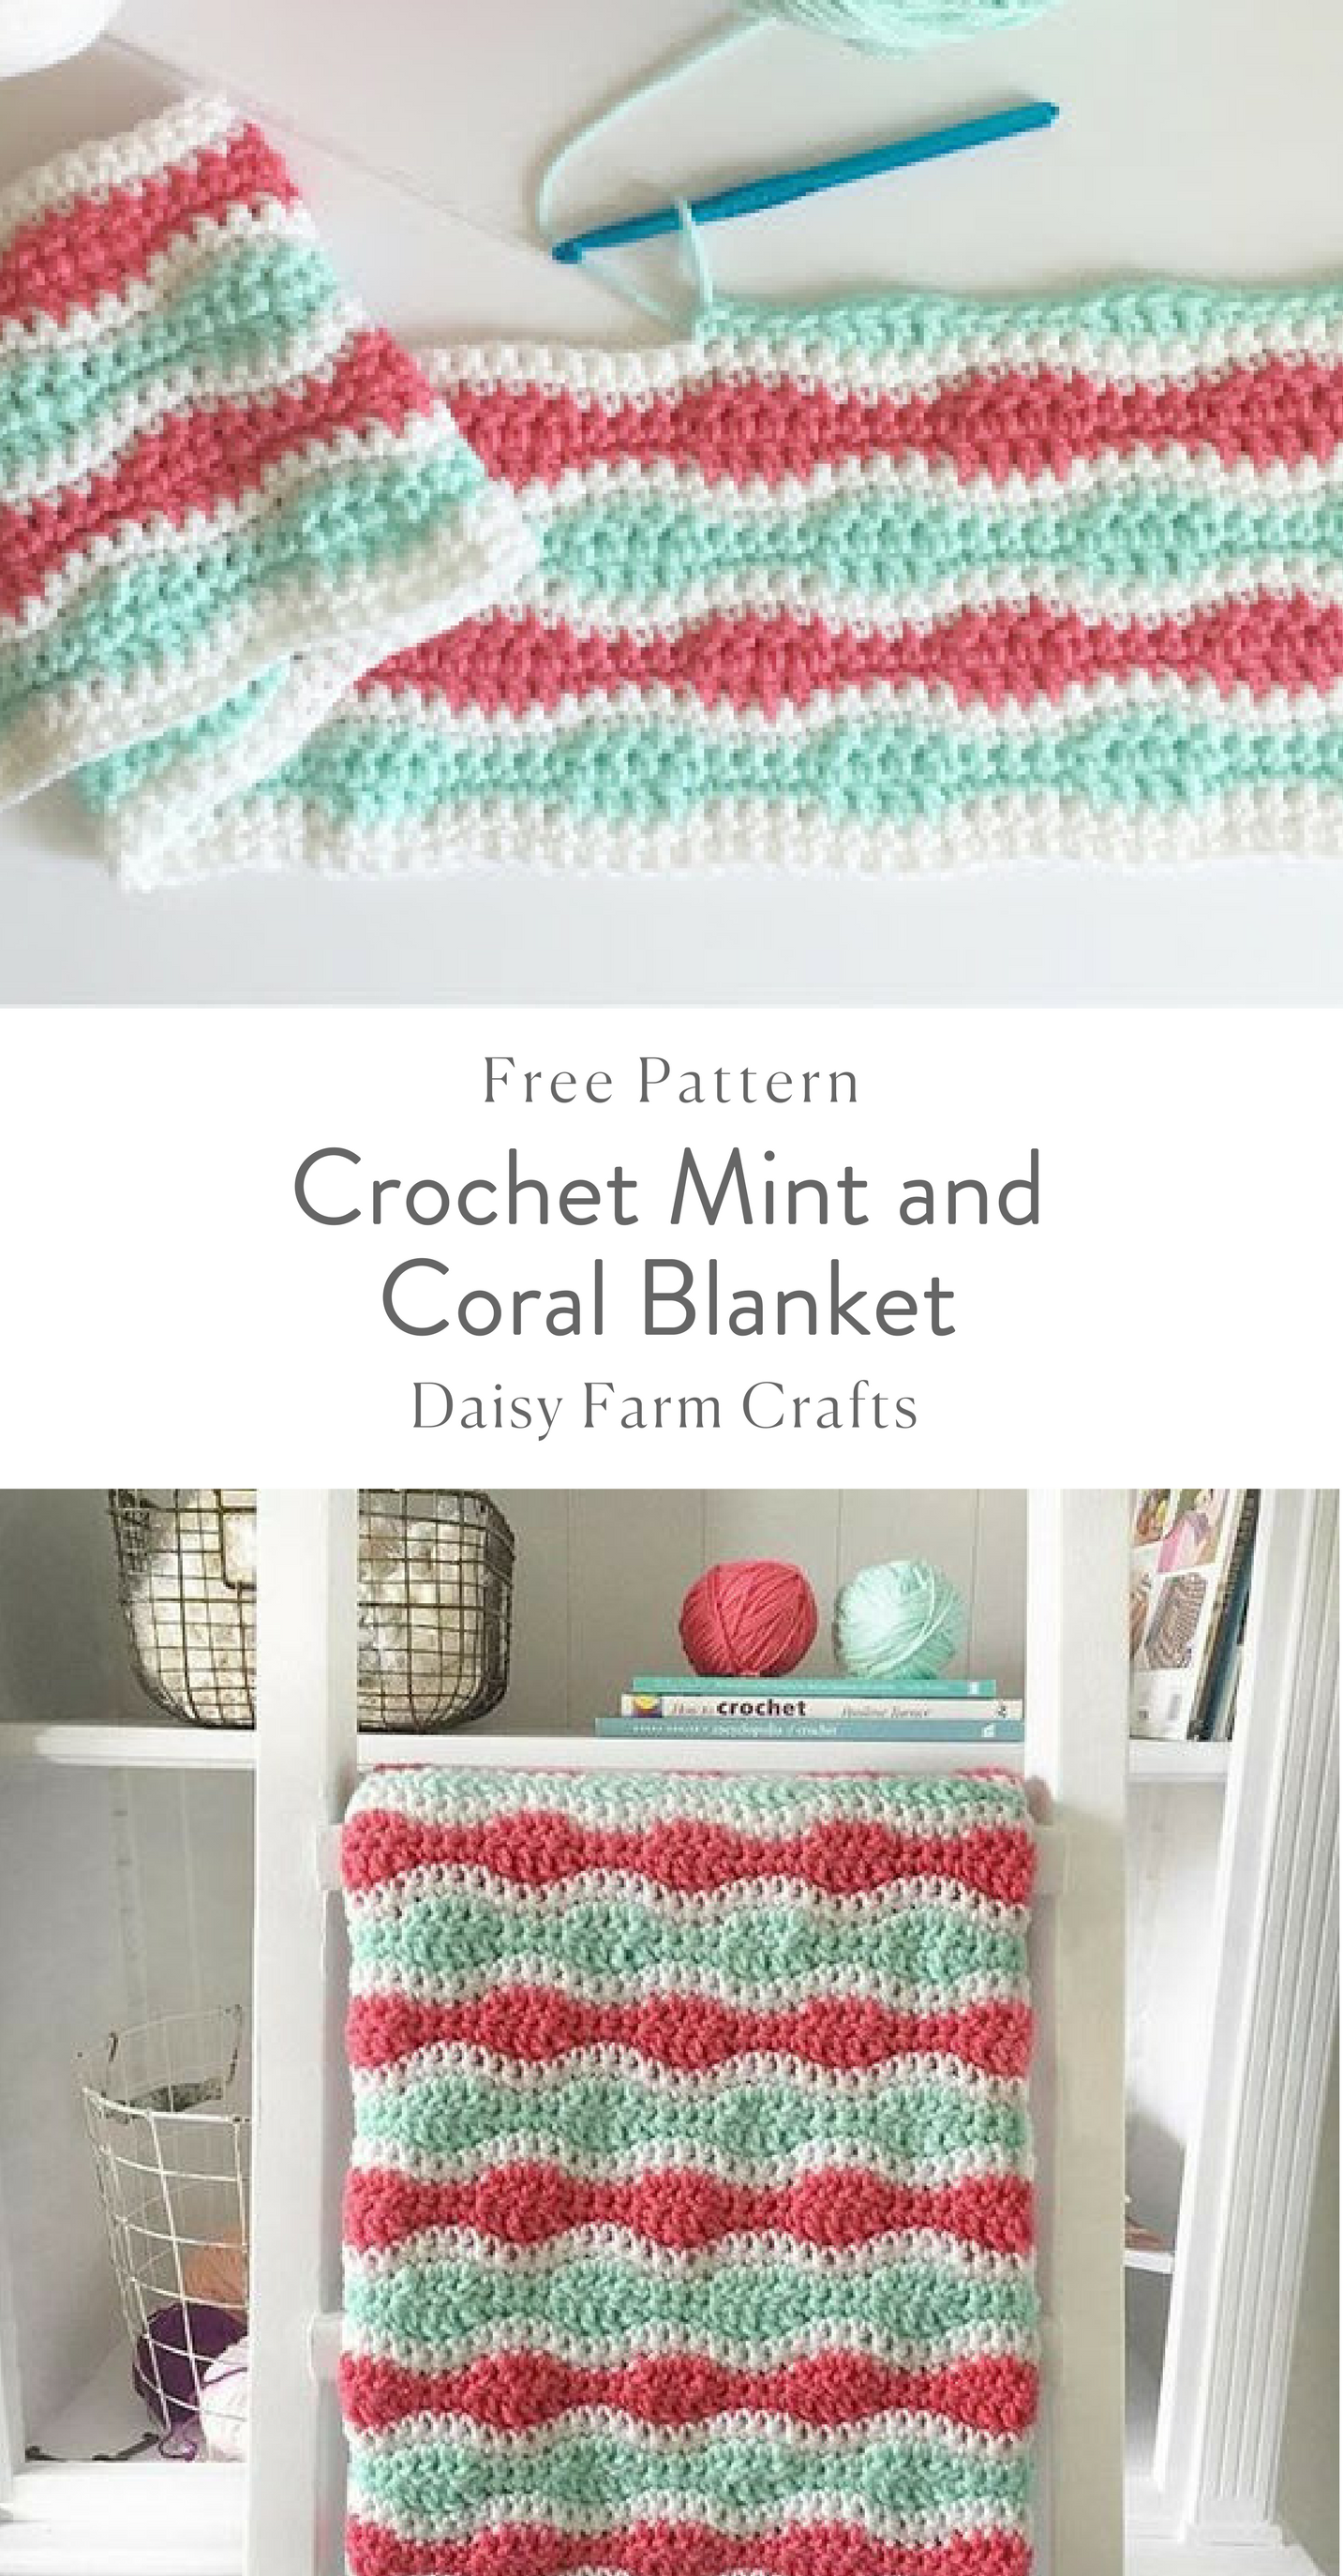 Crochet Mint and Coral Blanket - Free Pattern | Crochet ...